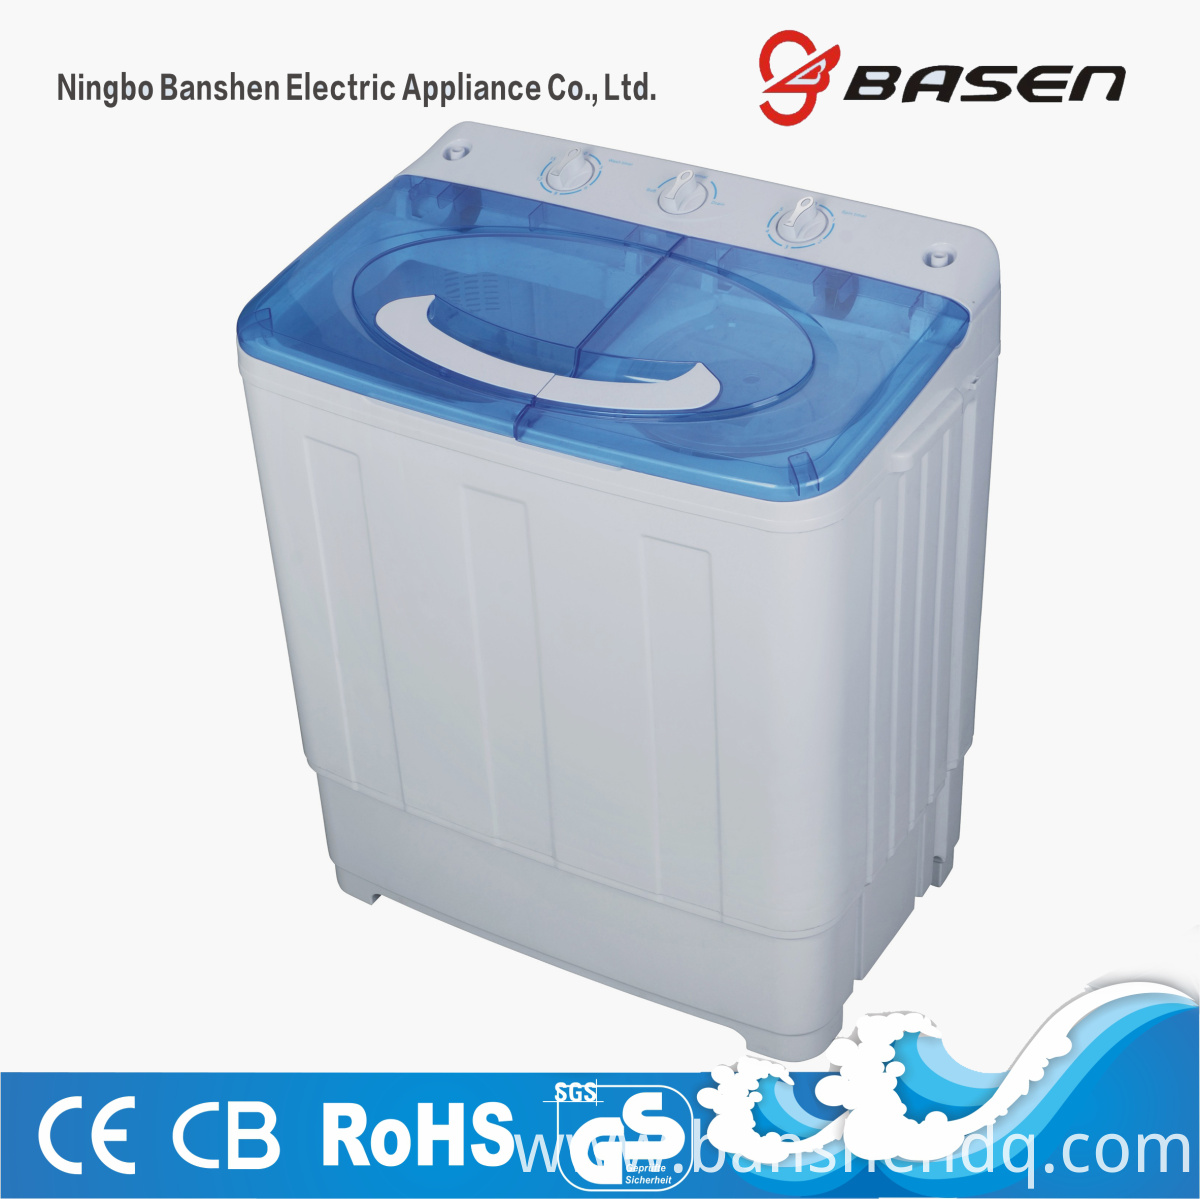 7.2kg twin tub washing machine